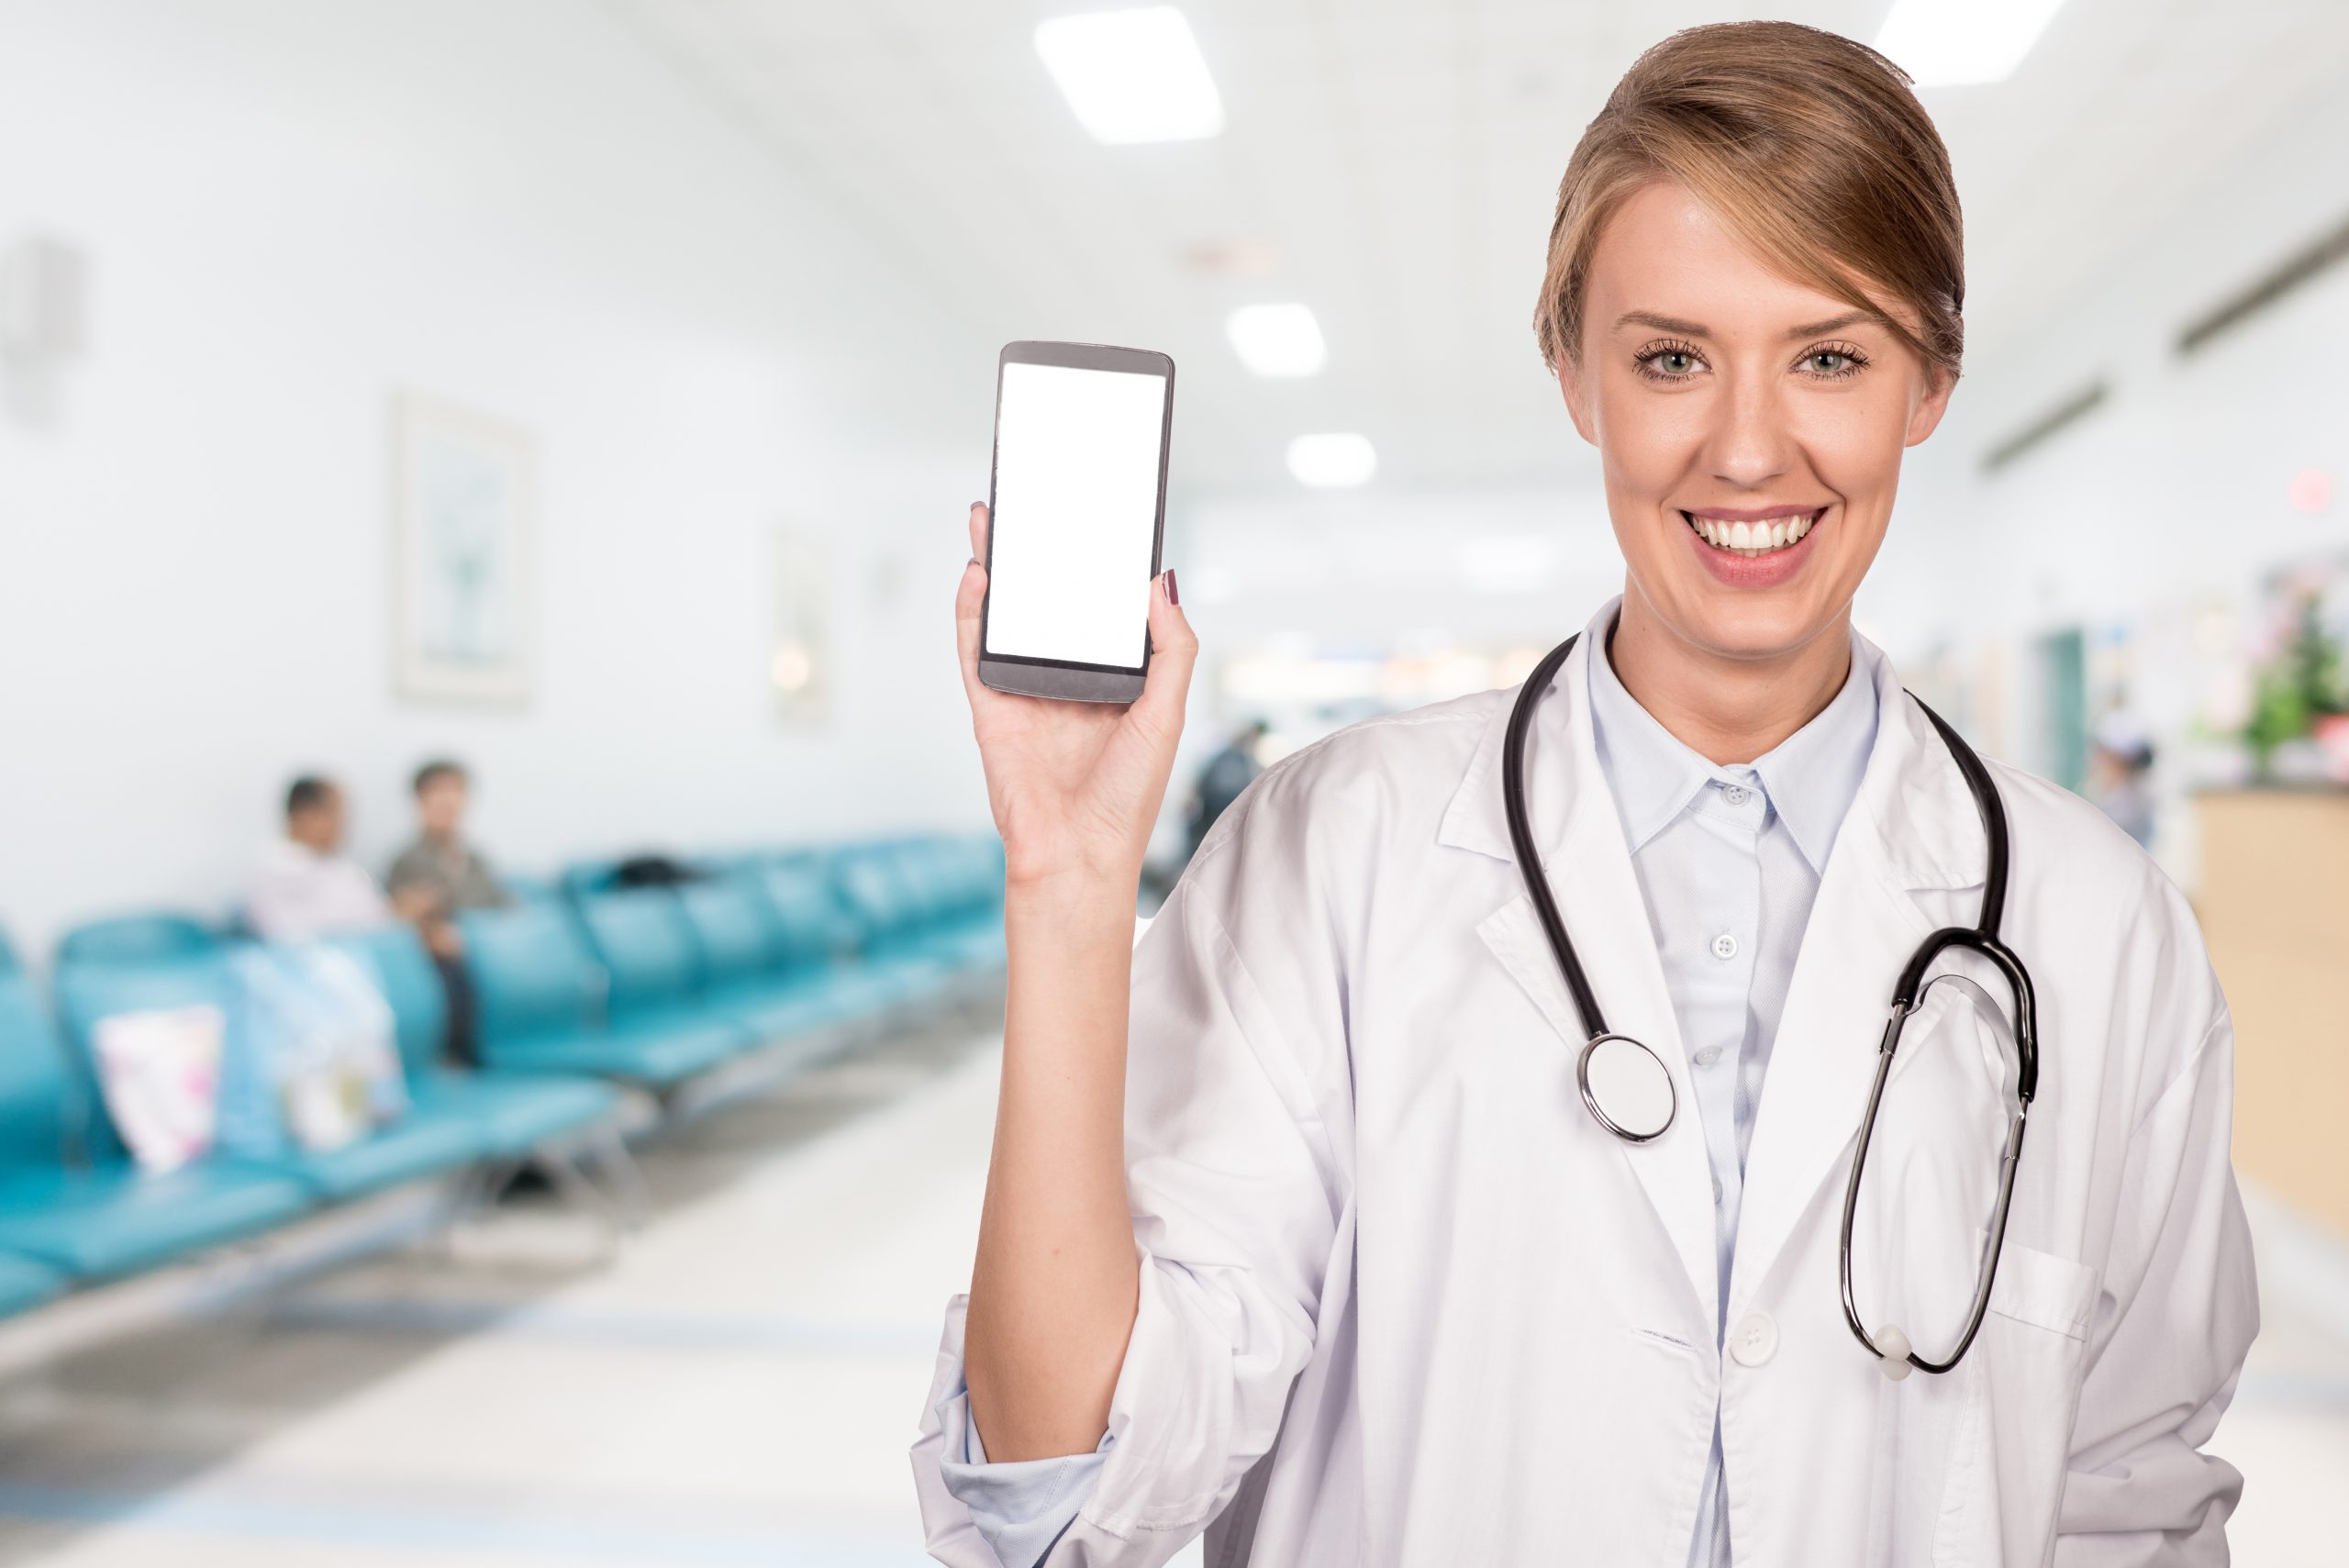 5 phone commandments healthcare professionals should have in mind when using their cell phones during working shifts.